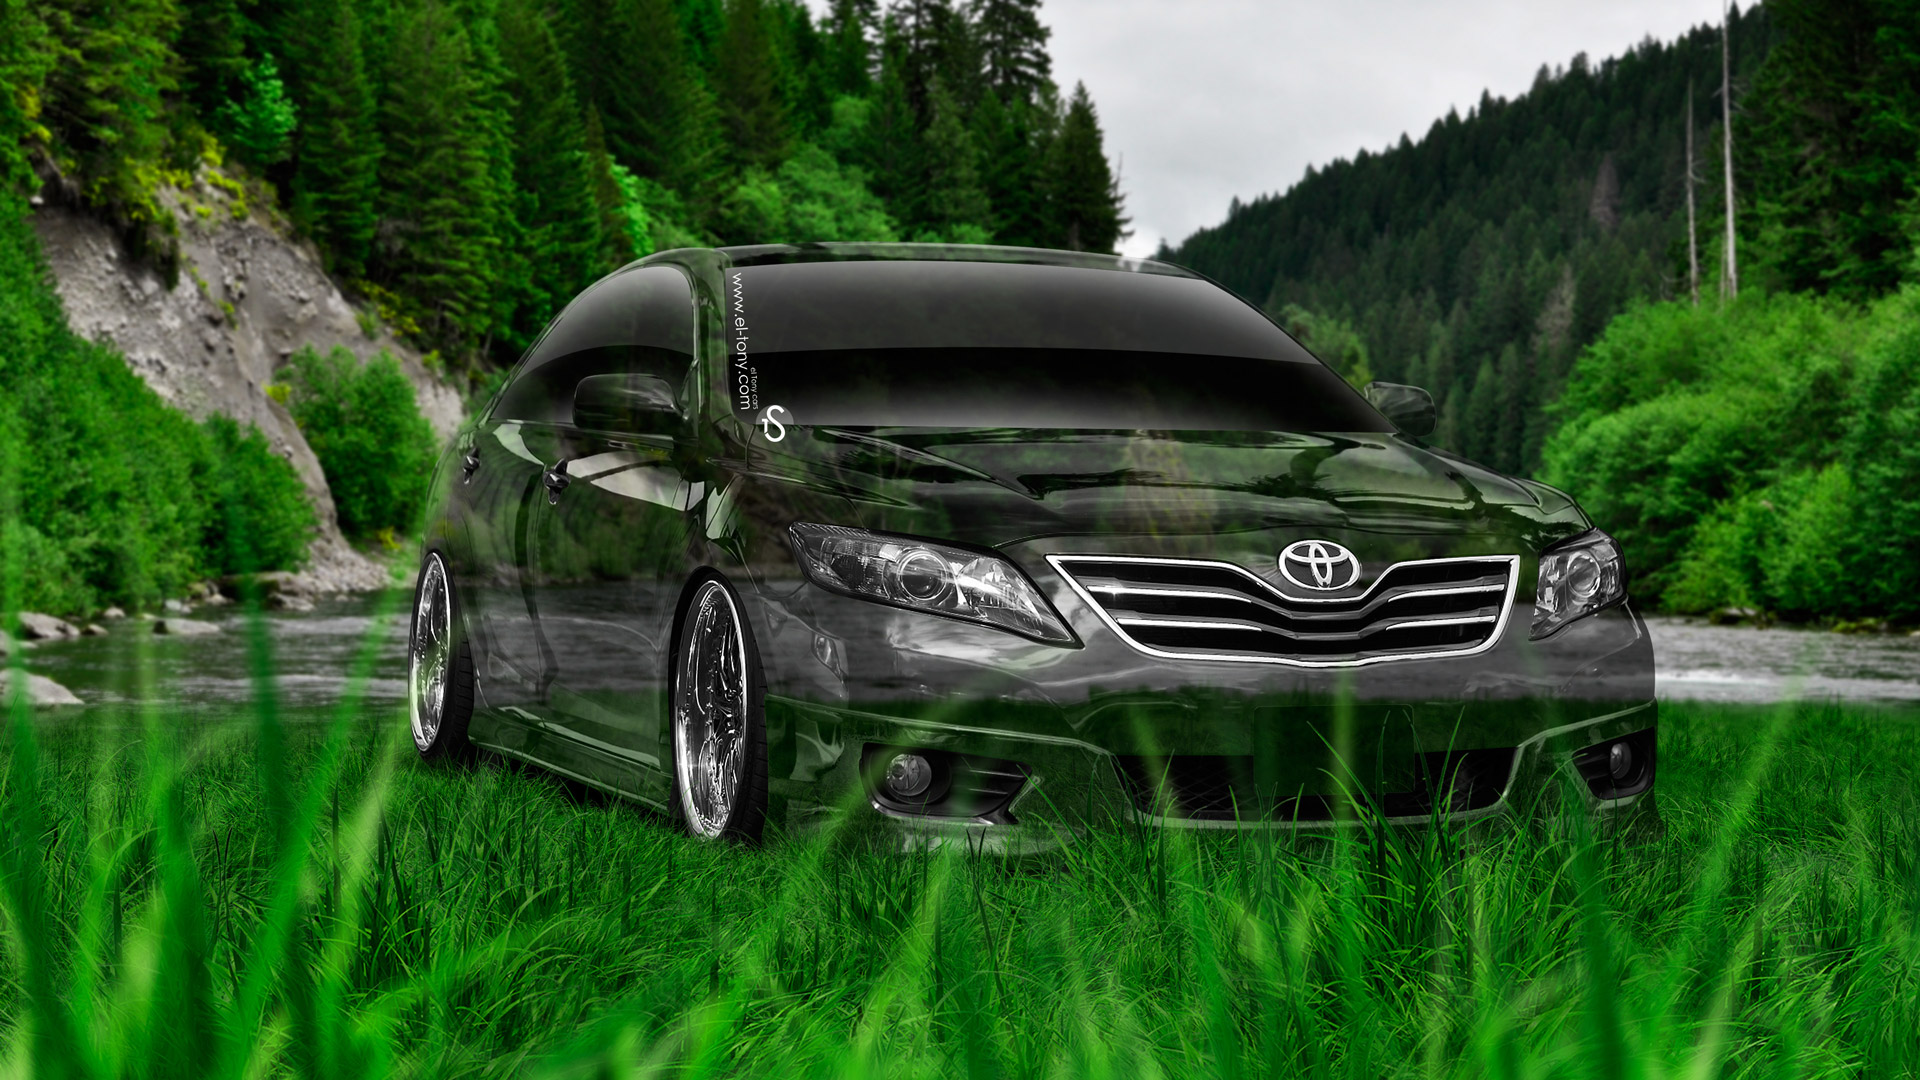 Toyota Camry Crystal Nature Car 2014 Art Green